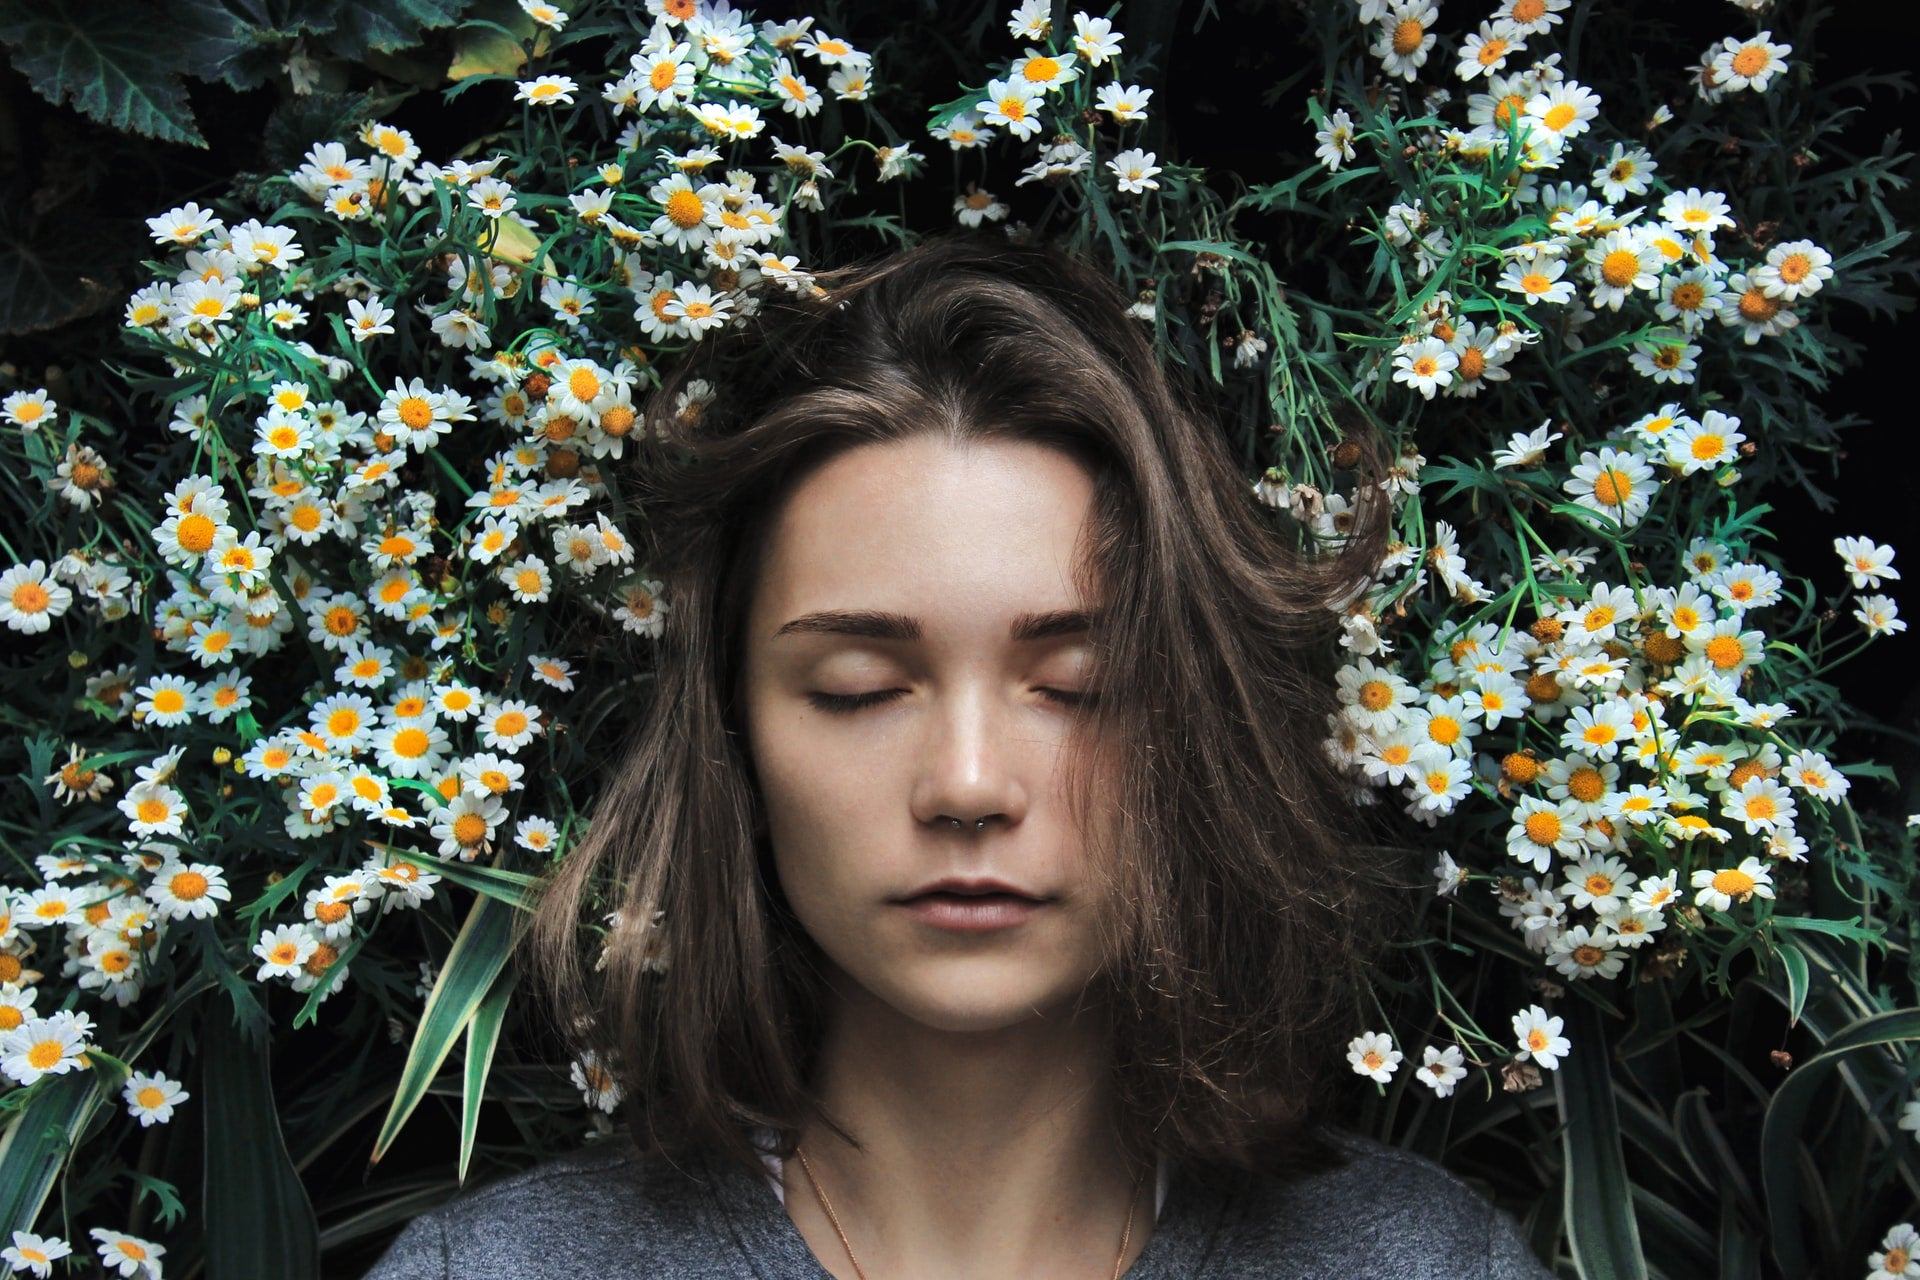 Woman asleep in a filed of daisies